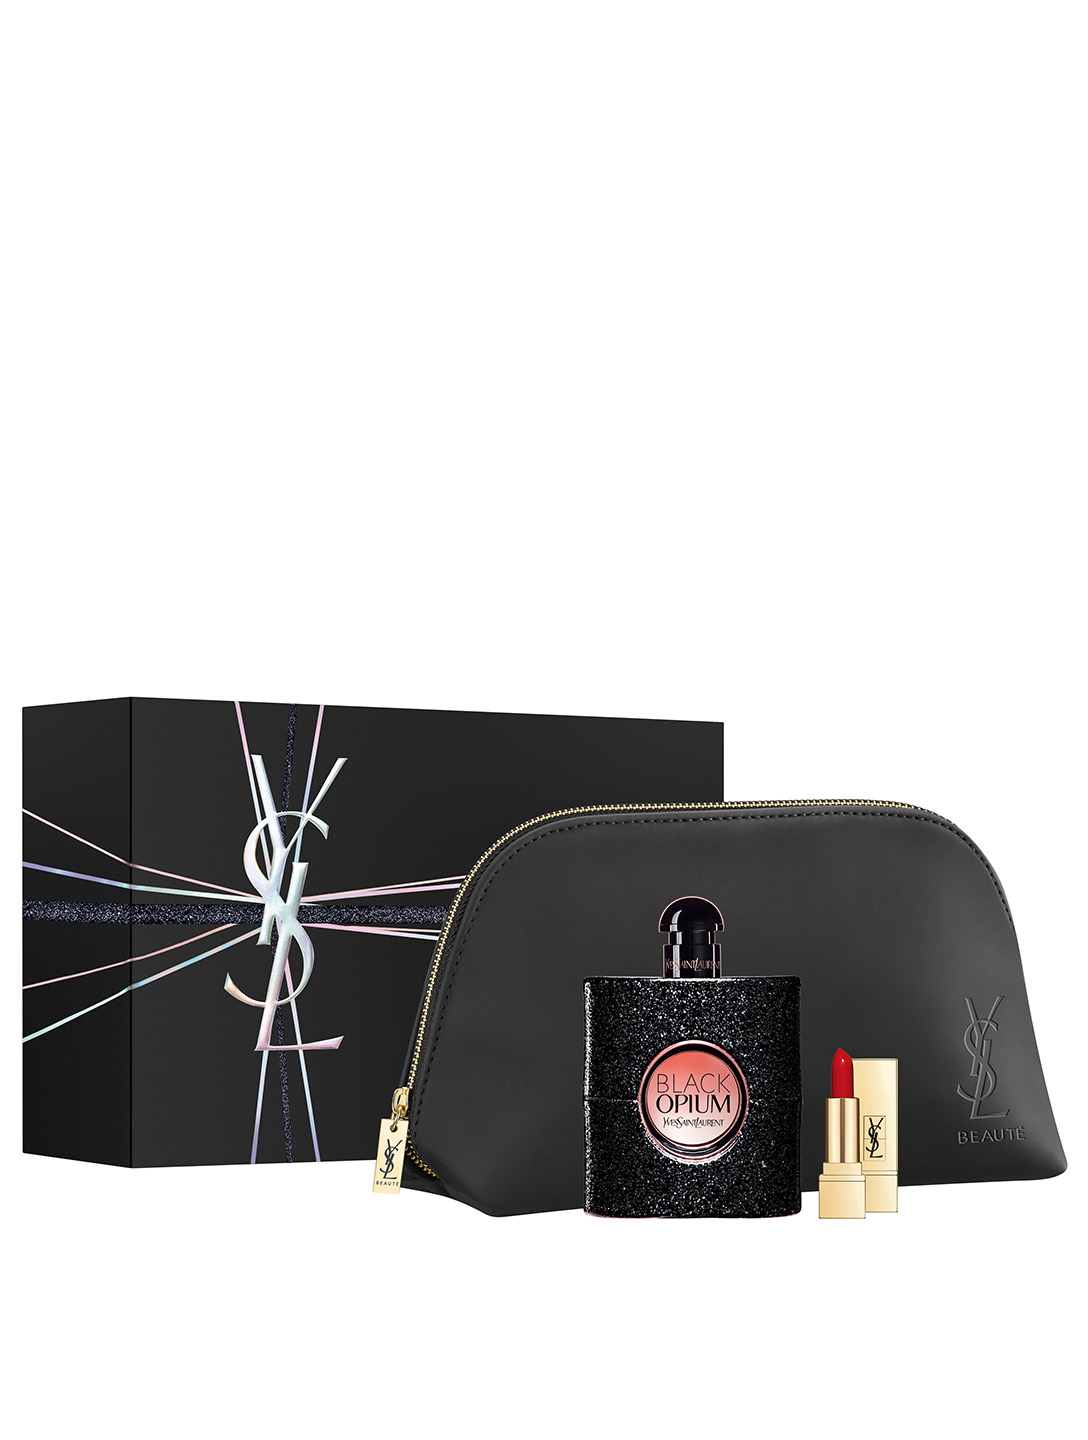 YVES SAINT LAURENT Black Opium Makeup Gift Set Beauty